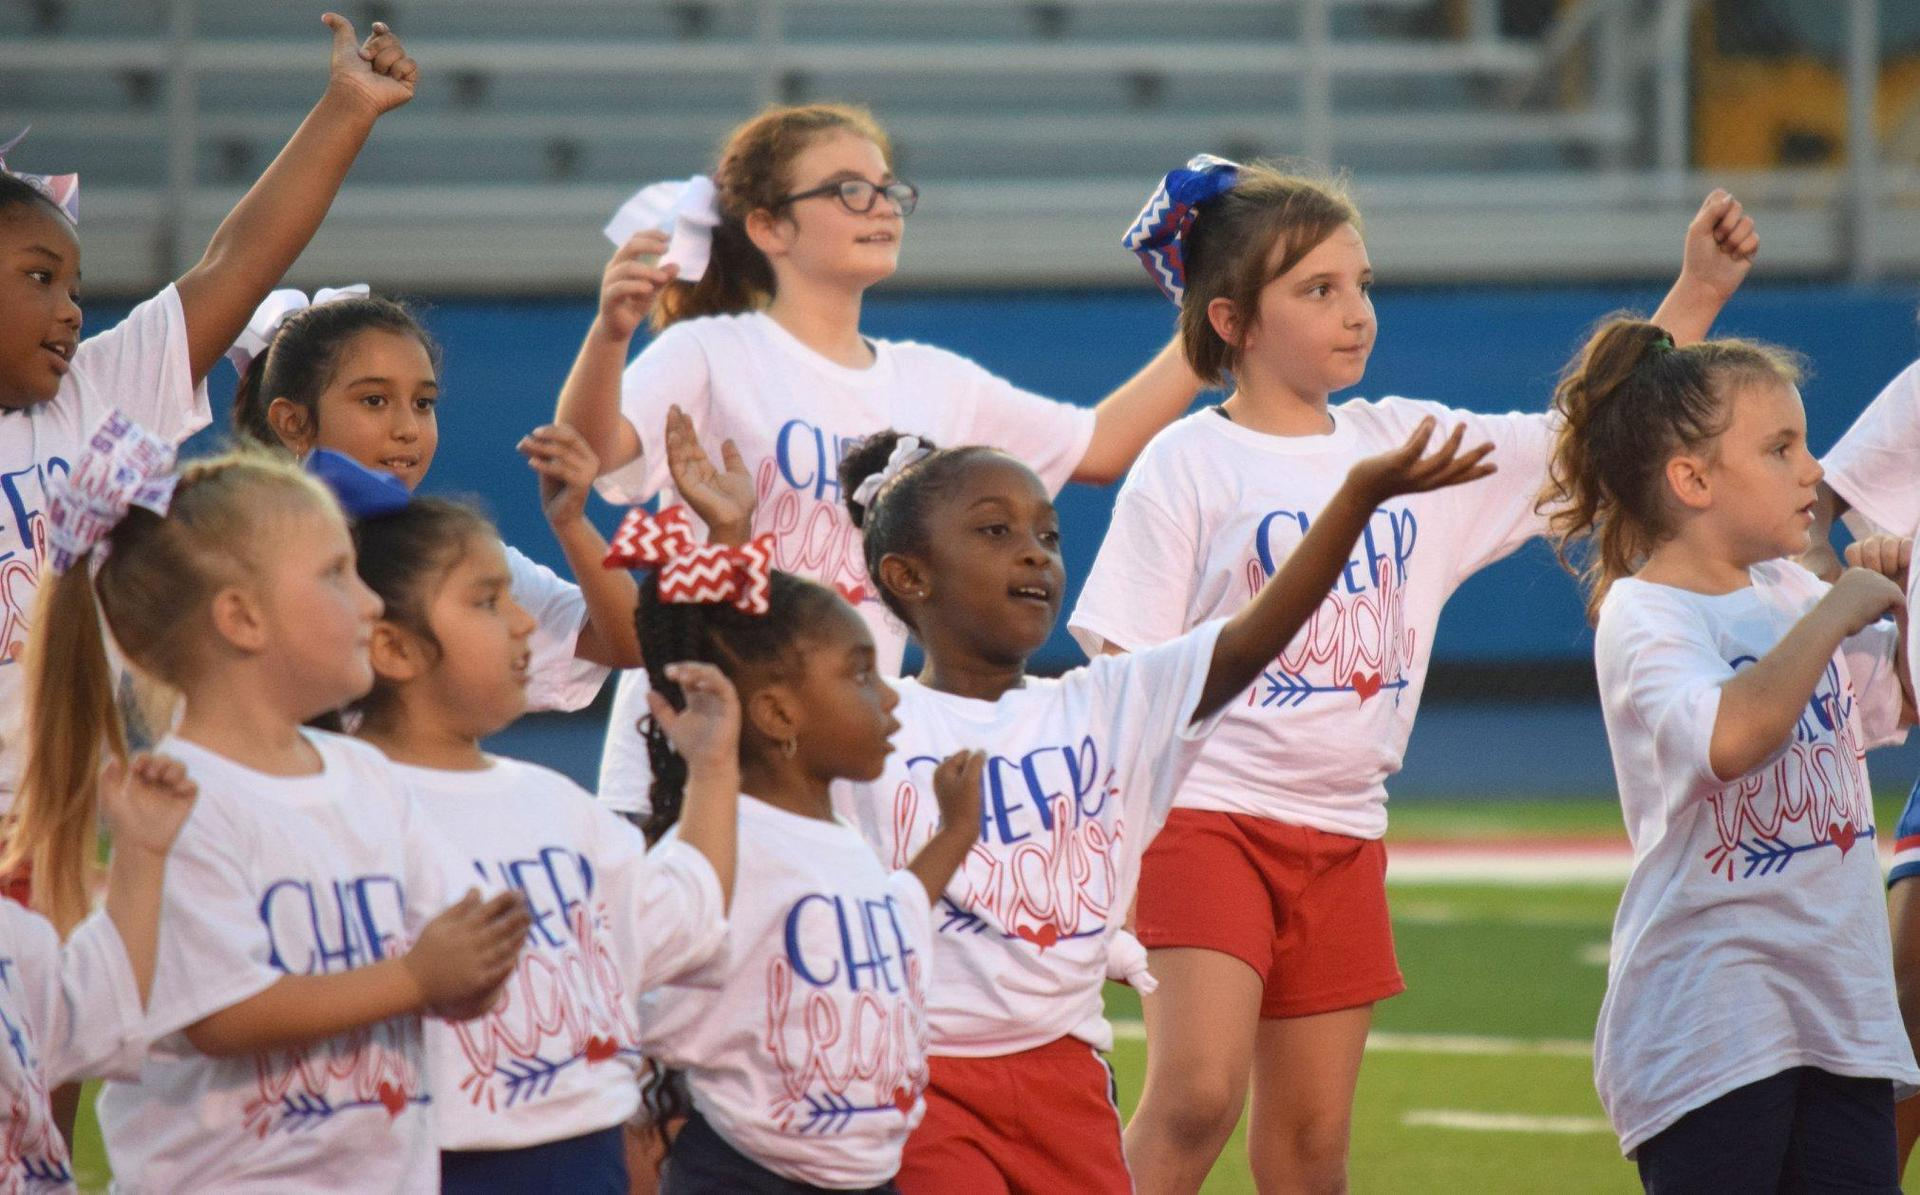 Little Panther Cheerleaders Show Their Panther Pride